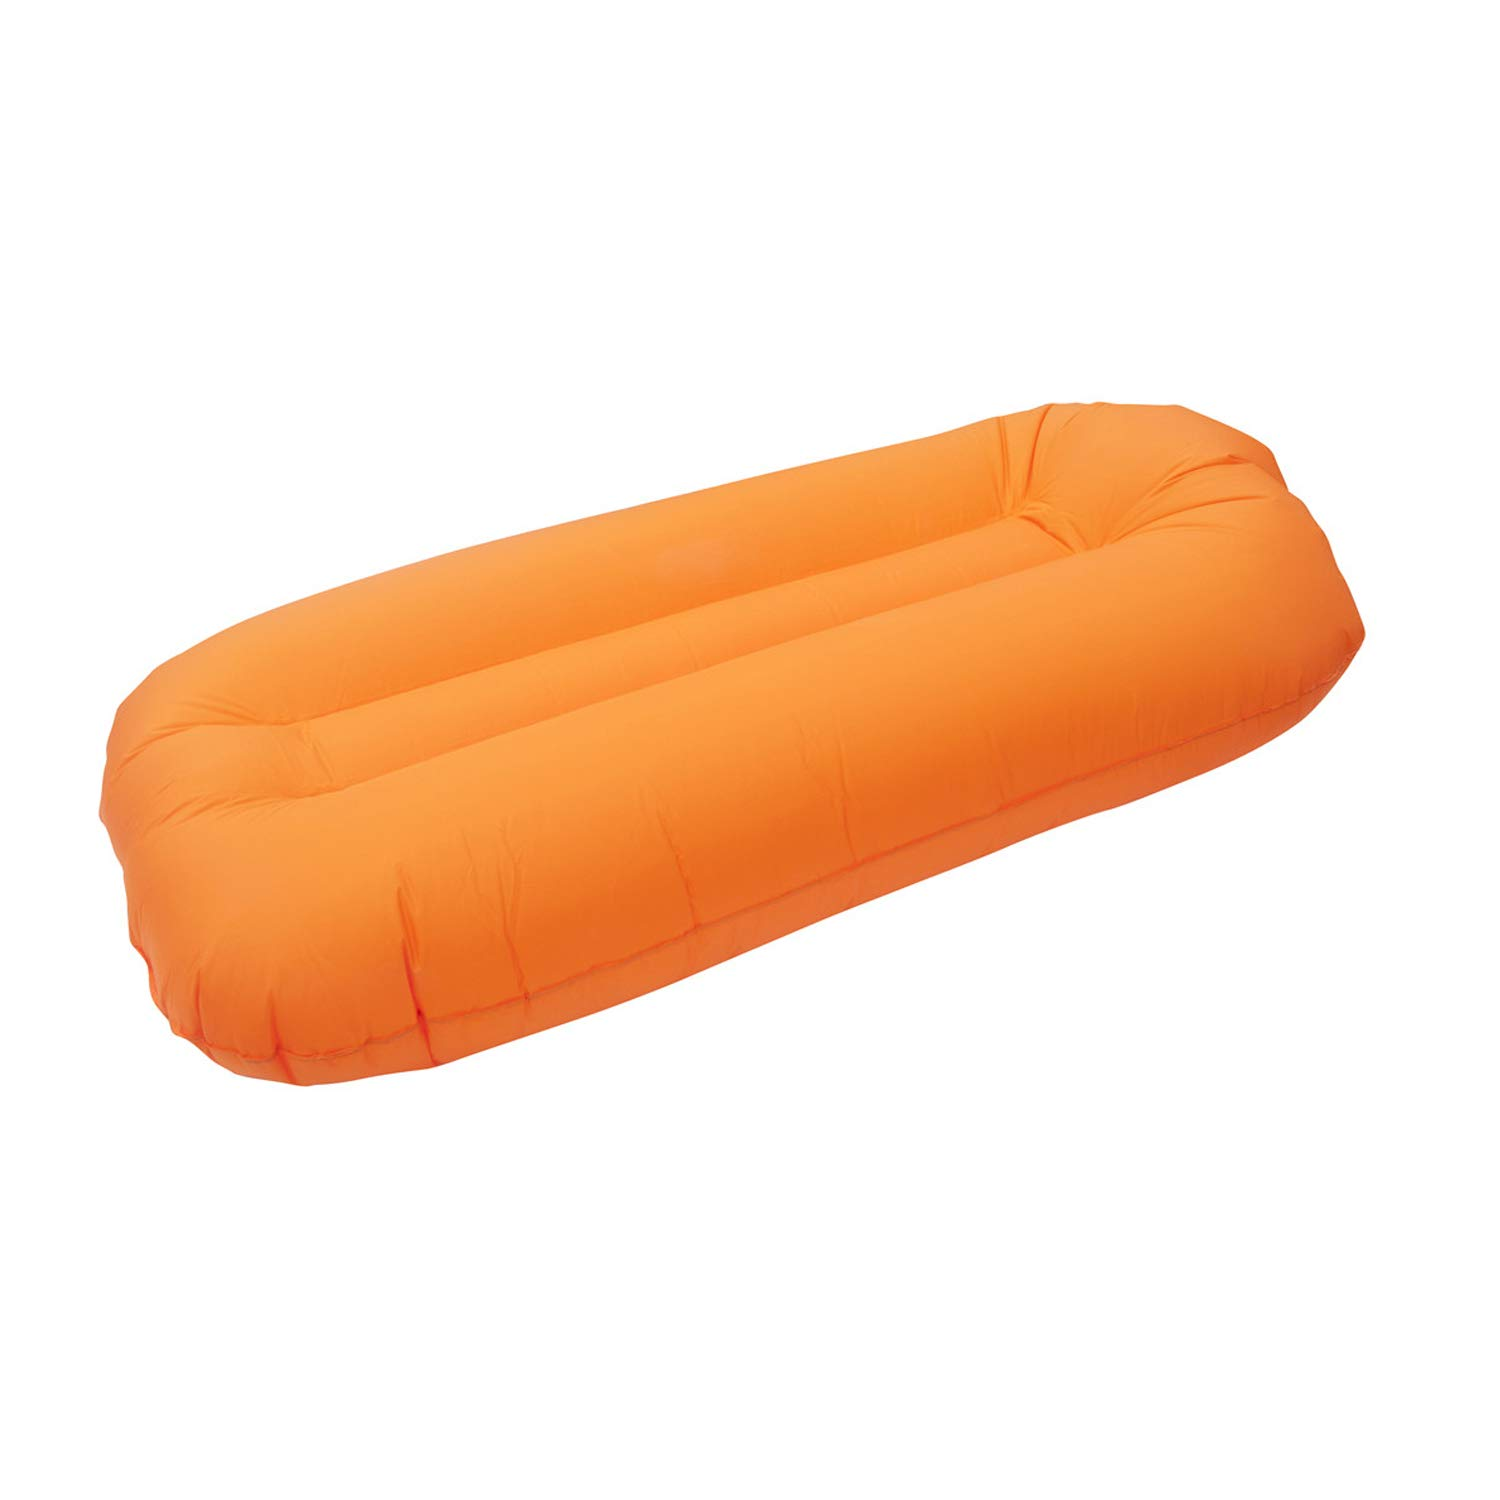 SUNSHINEMALL Inflatable Lounger Air Chair Couch Hammock, Lazy Hangout Beach Couch Camping Sofa Couch Sport Outdoor Pool Toy Float (Orange) by SUNSHINEMALL